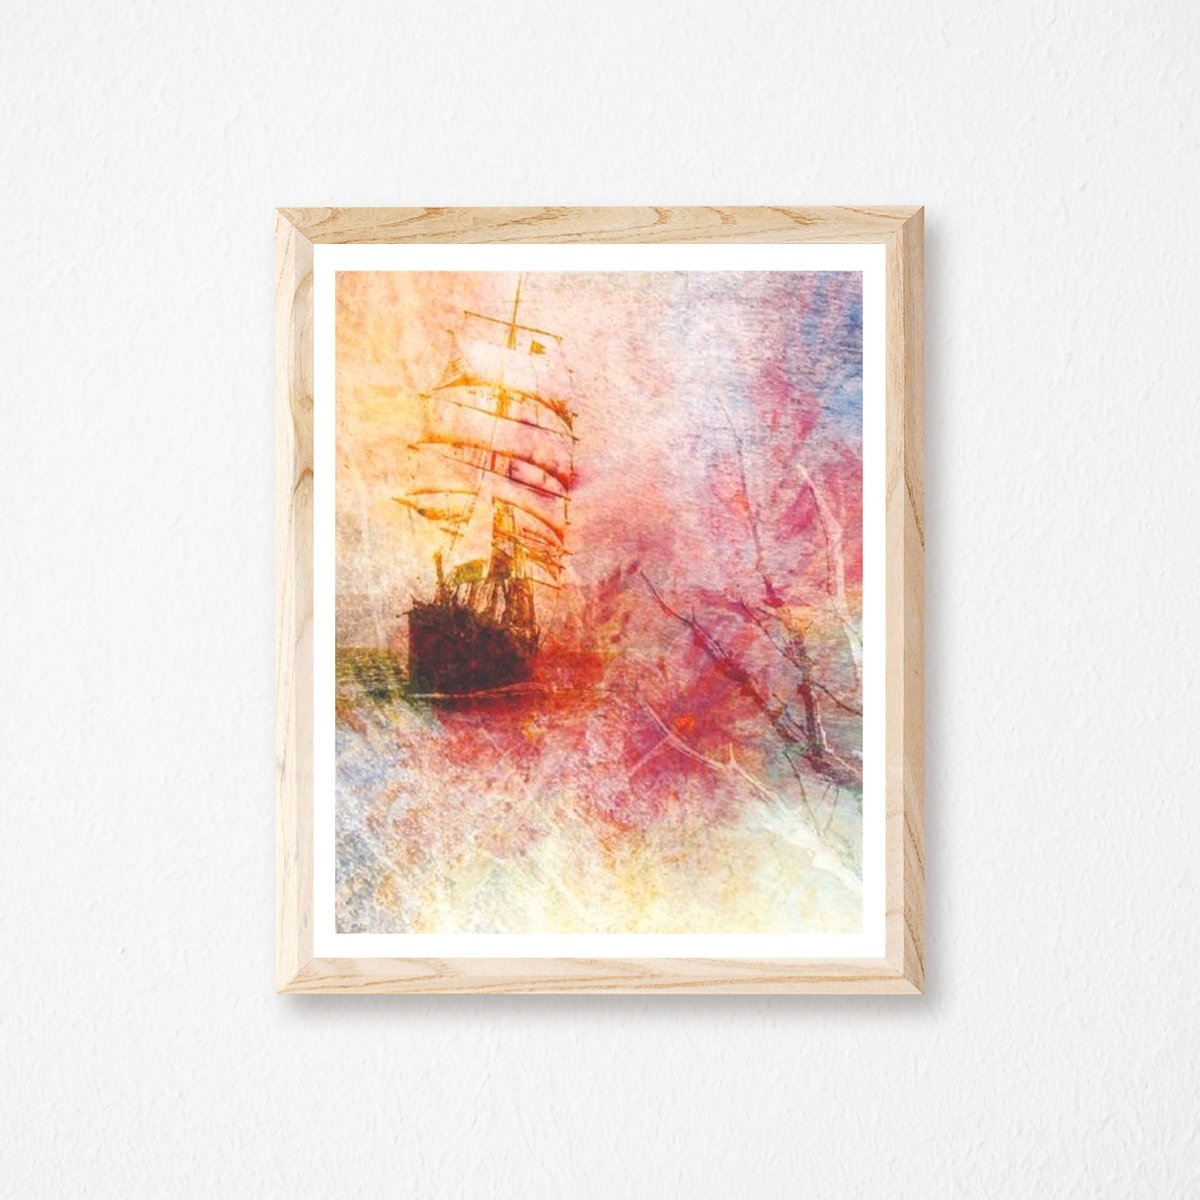 BitterSweet Ship at Sea Christian Inspirational Religious Art https://t.co/0F58FMbD59 #truebluedesignco #Etsy #ChristianArt https://t.co/XvWgnY63I0